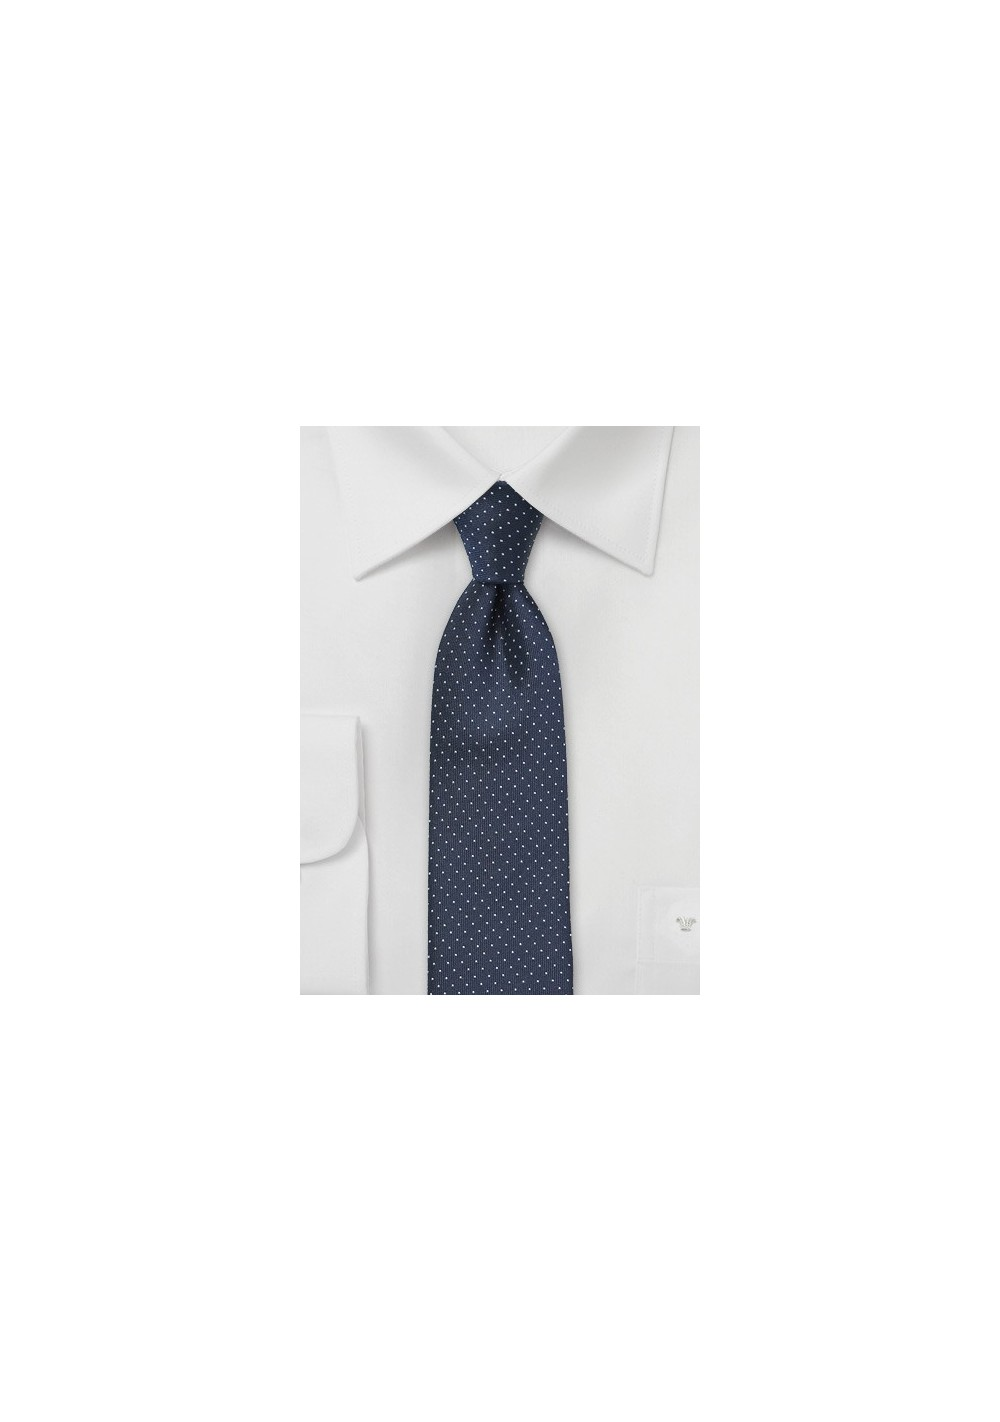 Skinny Tie in Midnight Blue with Silver Dots